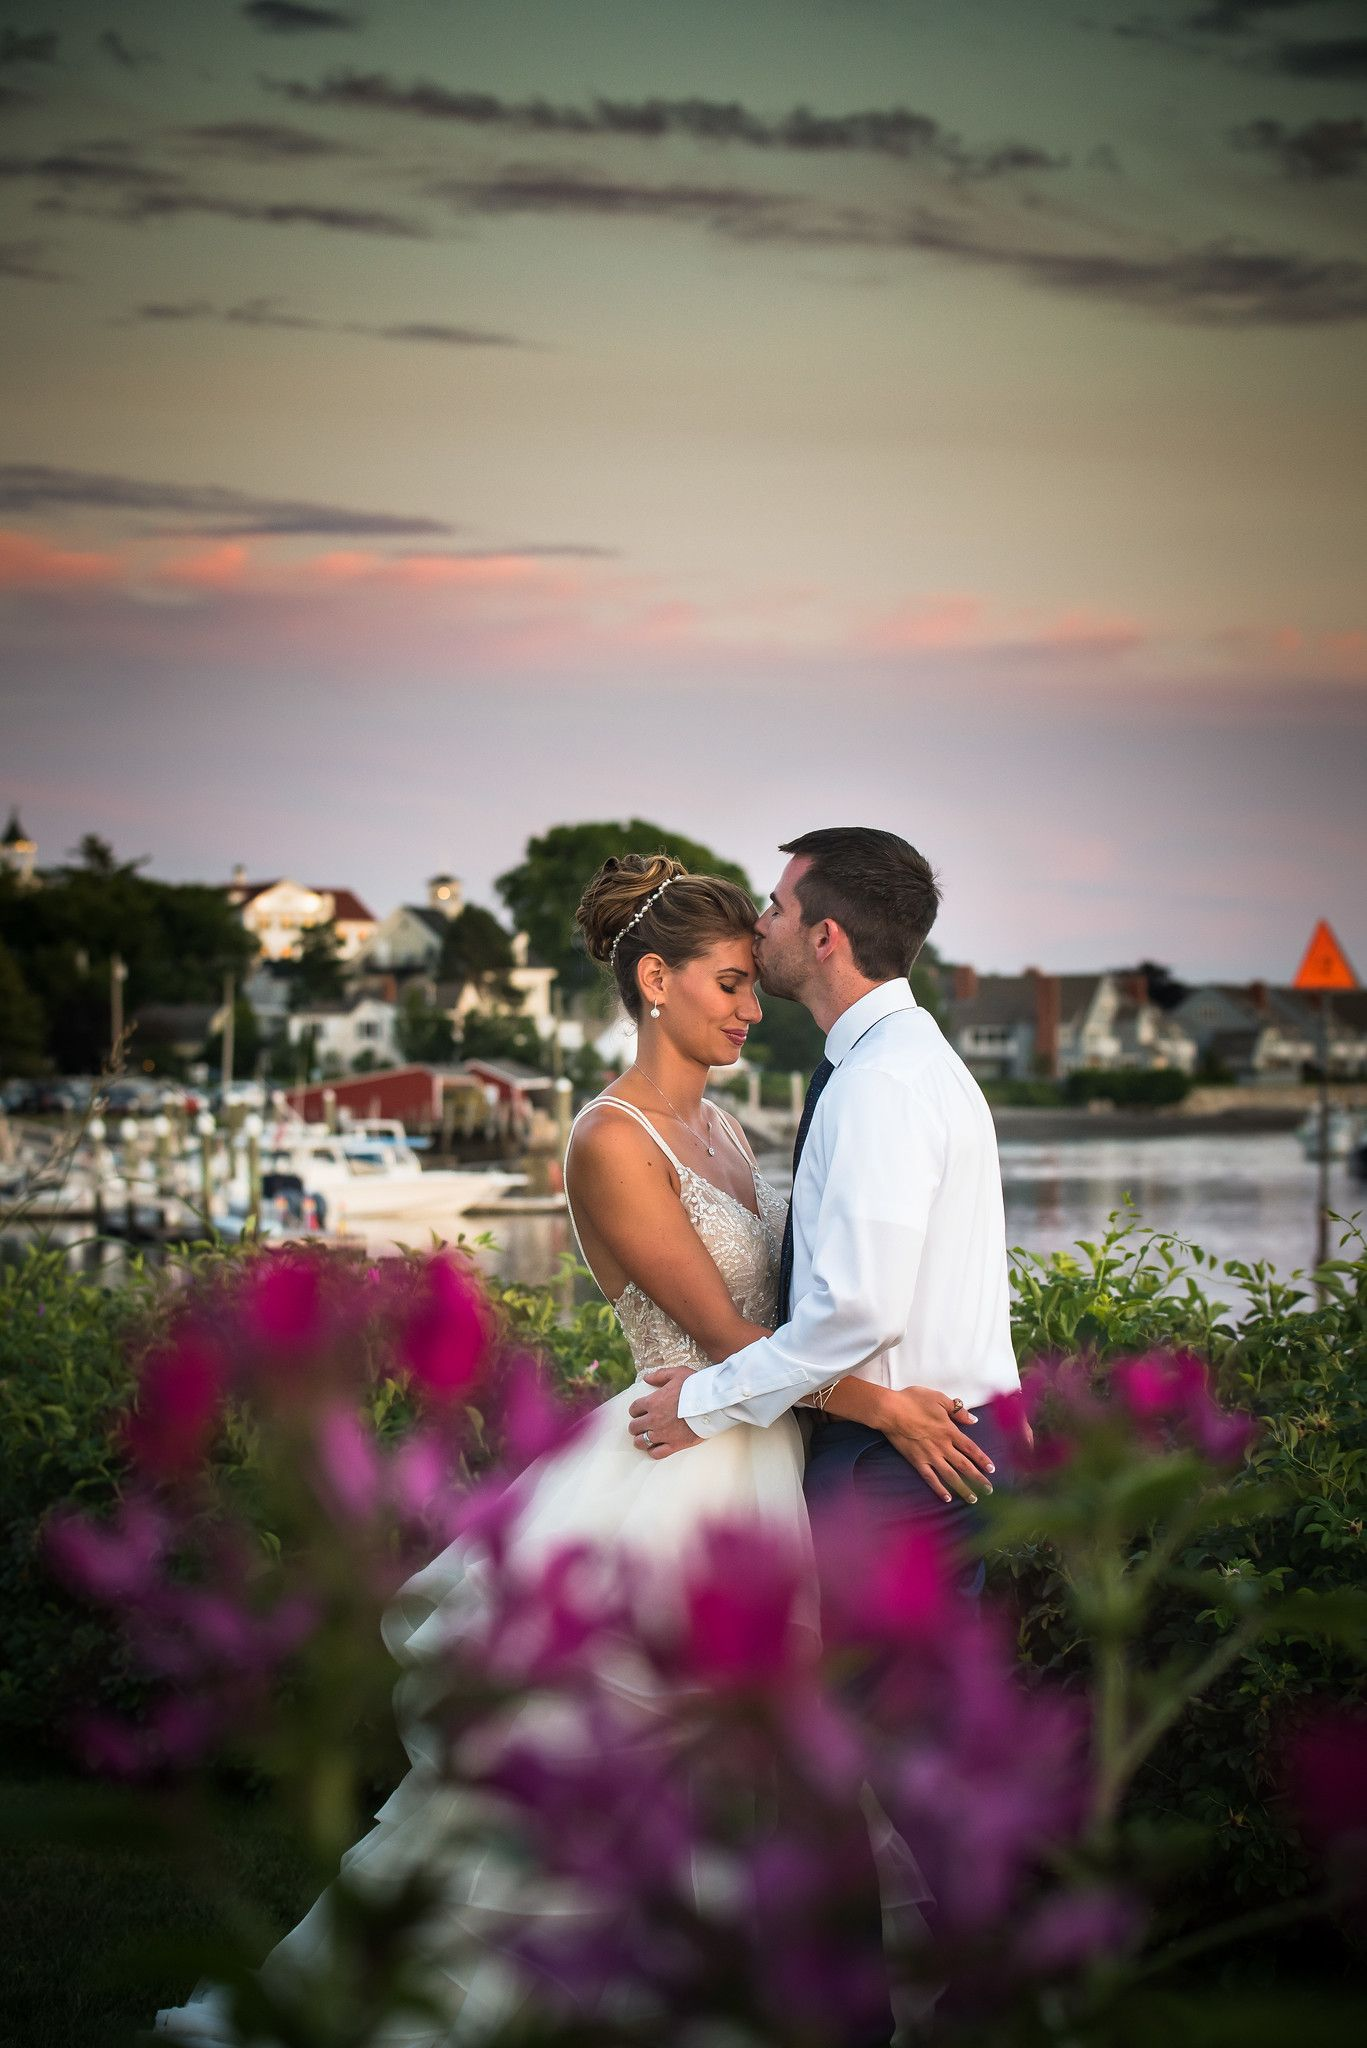 Kate Erics Wedding At The Nonantum Resort In Kennebunkport Maine Shot By A Moment